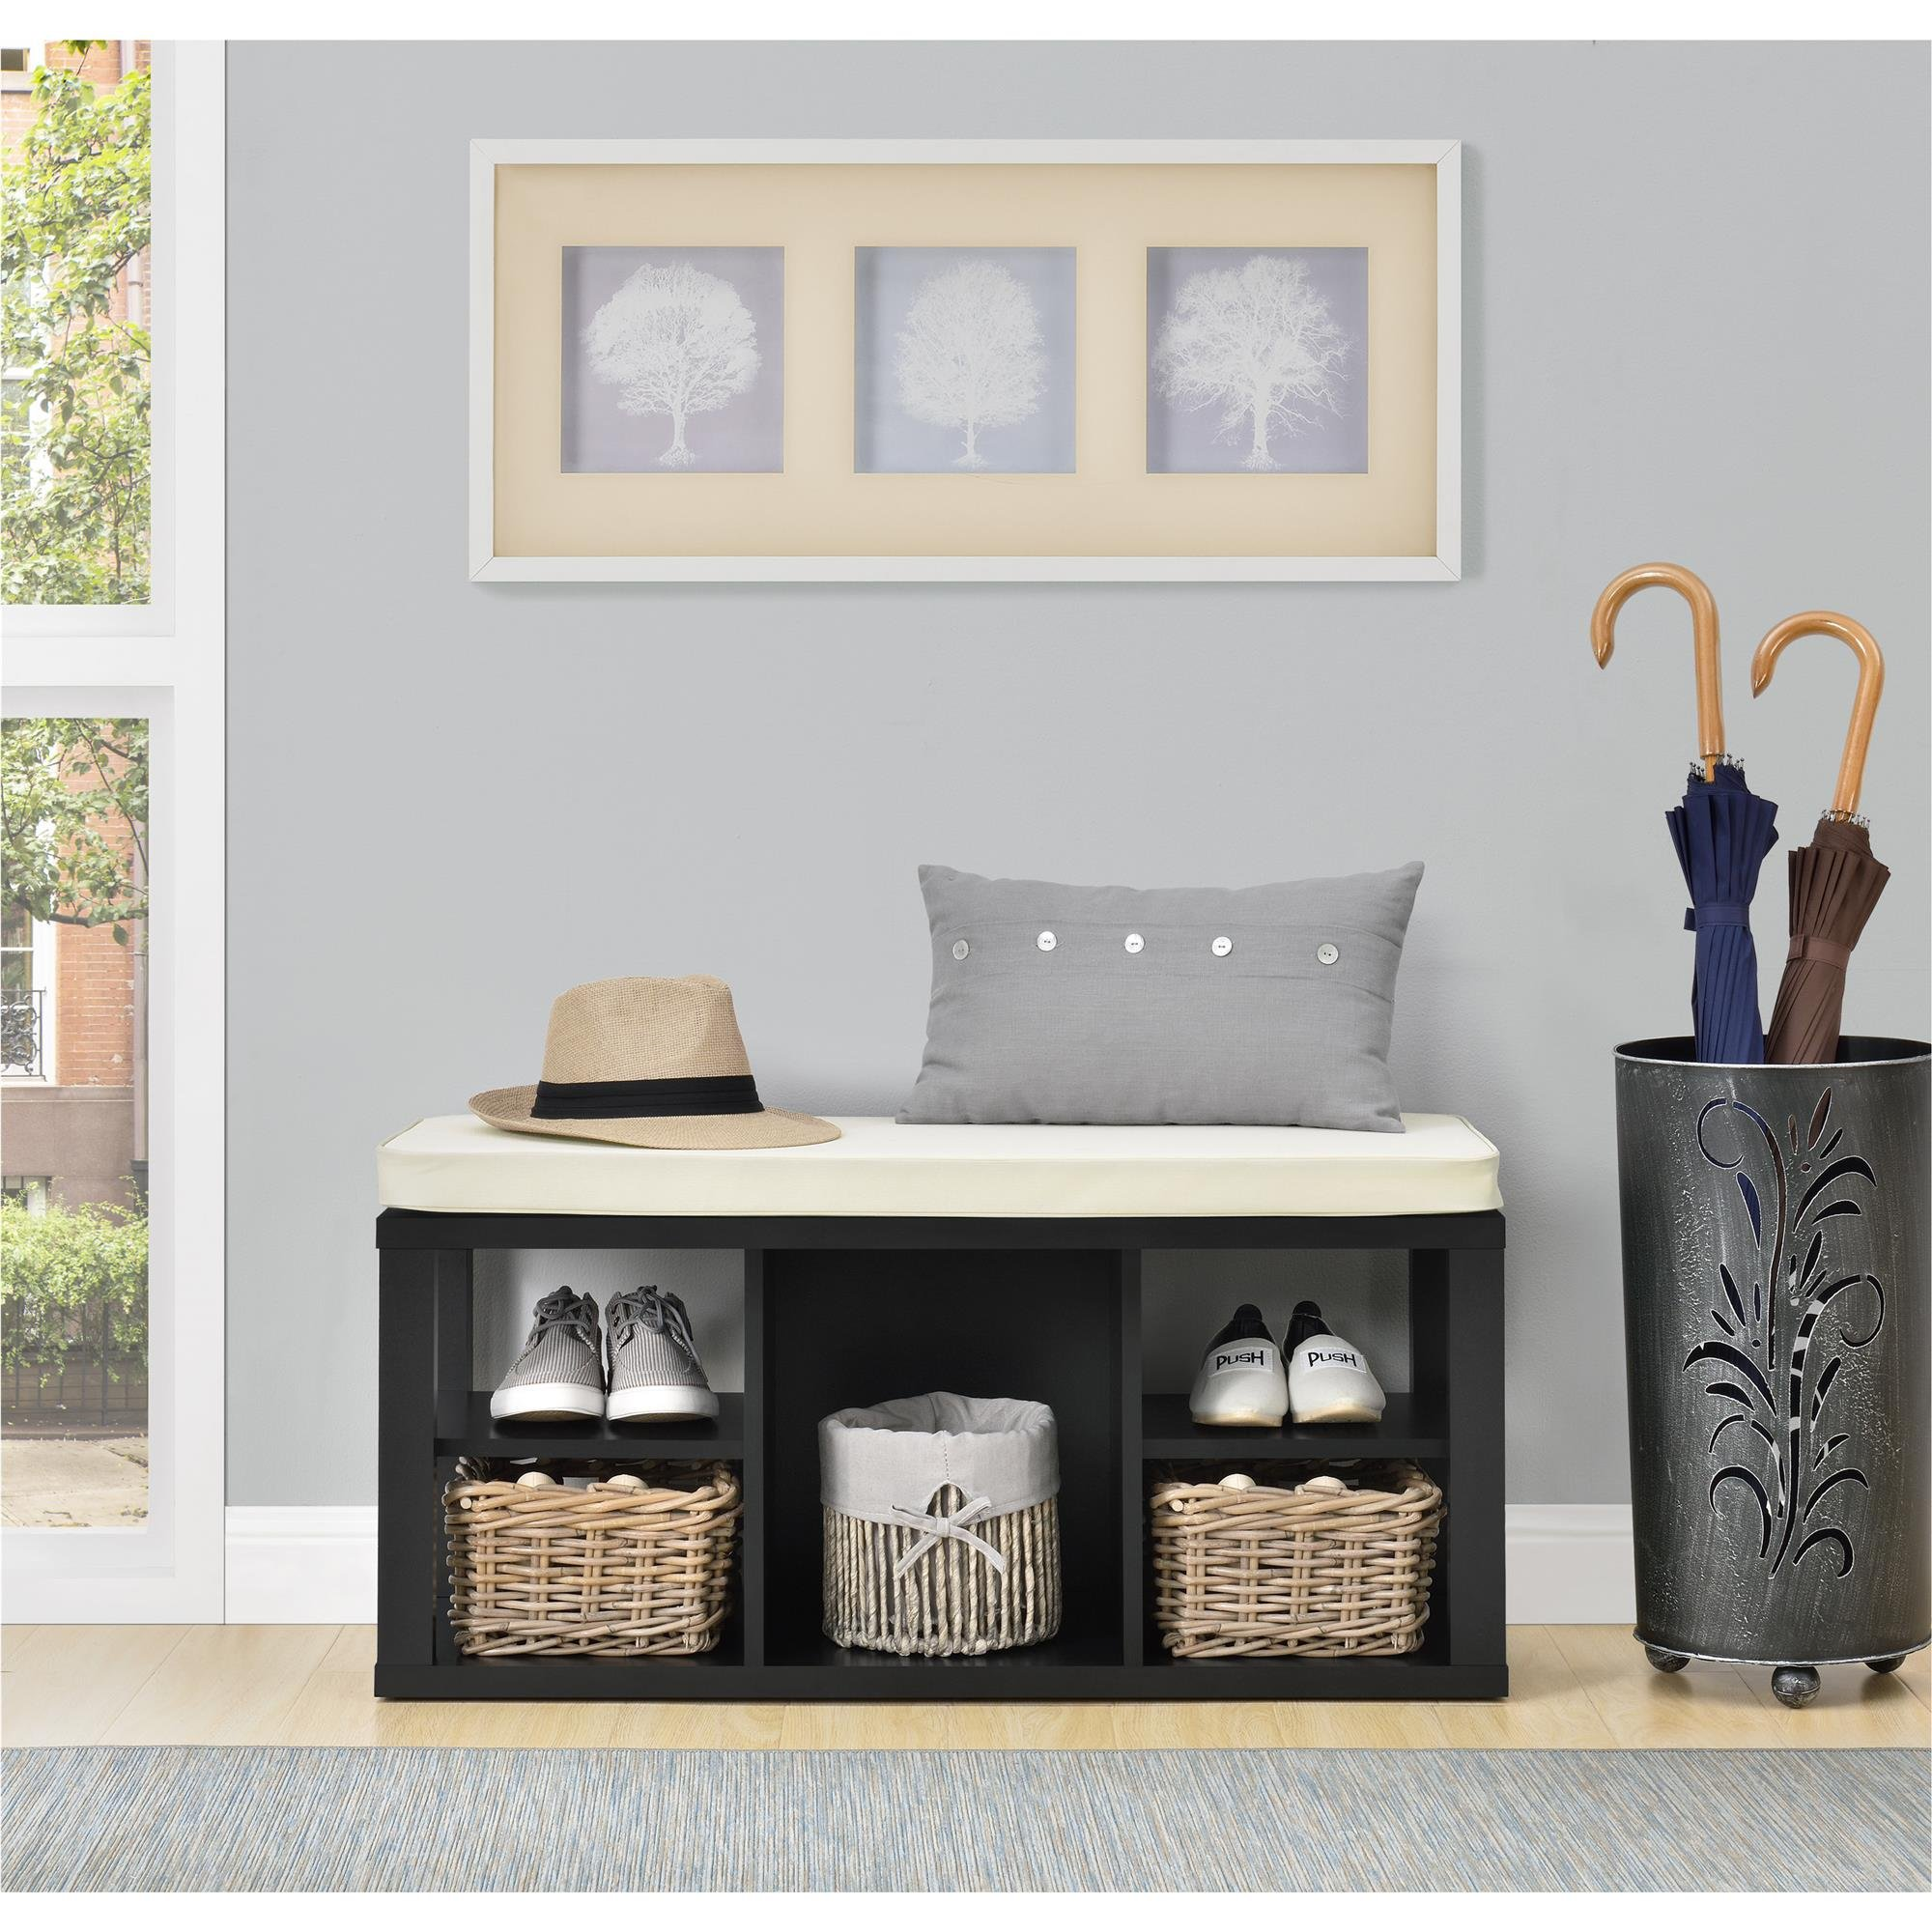 Ameriwood Home Parsons Storage Bench, Black by Ameriwood Home (Image #8)